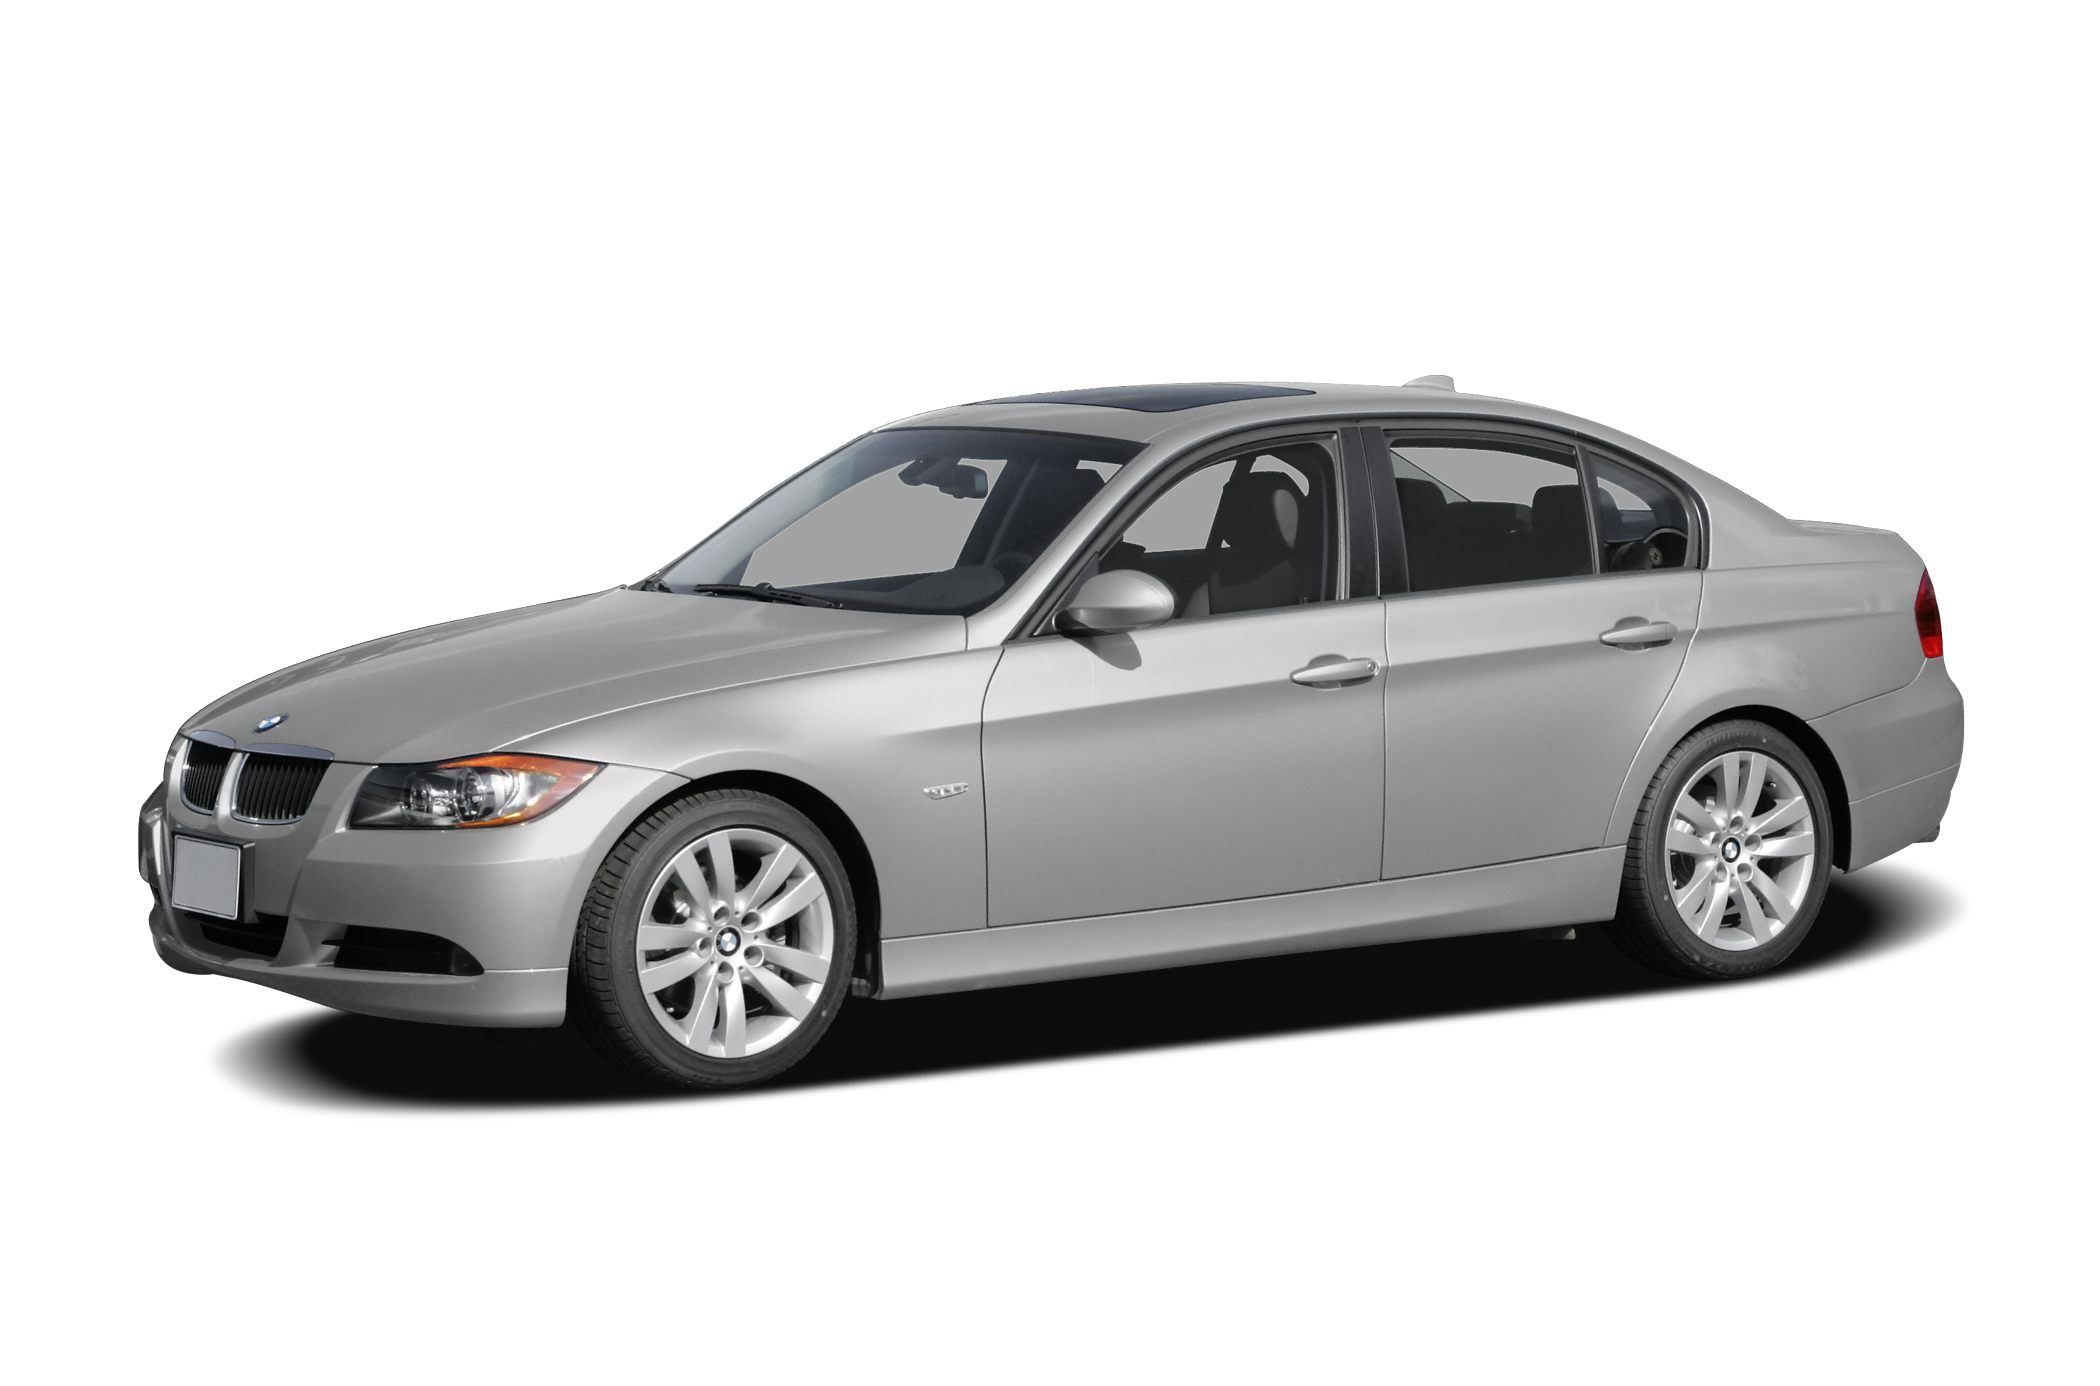 2008 BMW 3 Series 328i OUR PRICESYoure probably wondering why our prices are so much lower than